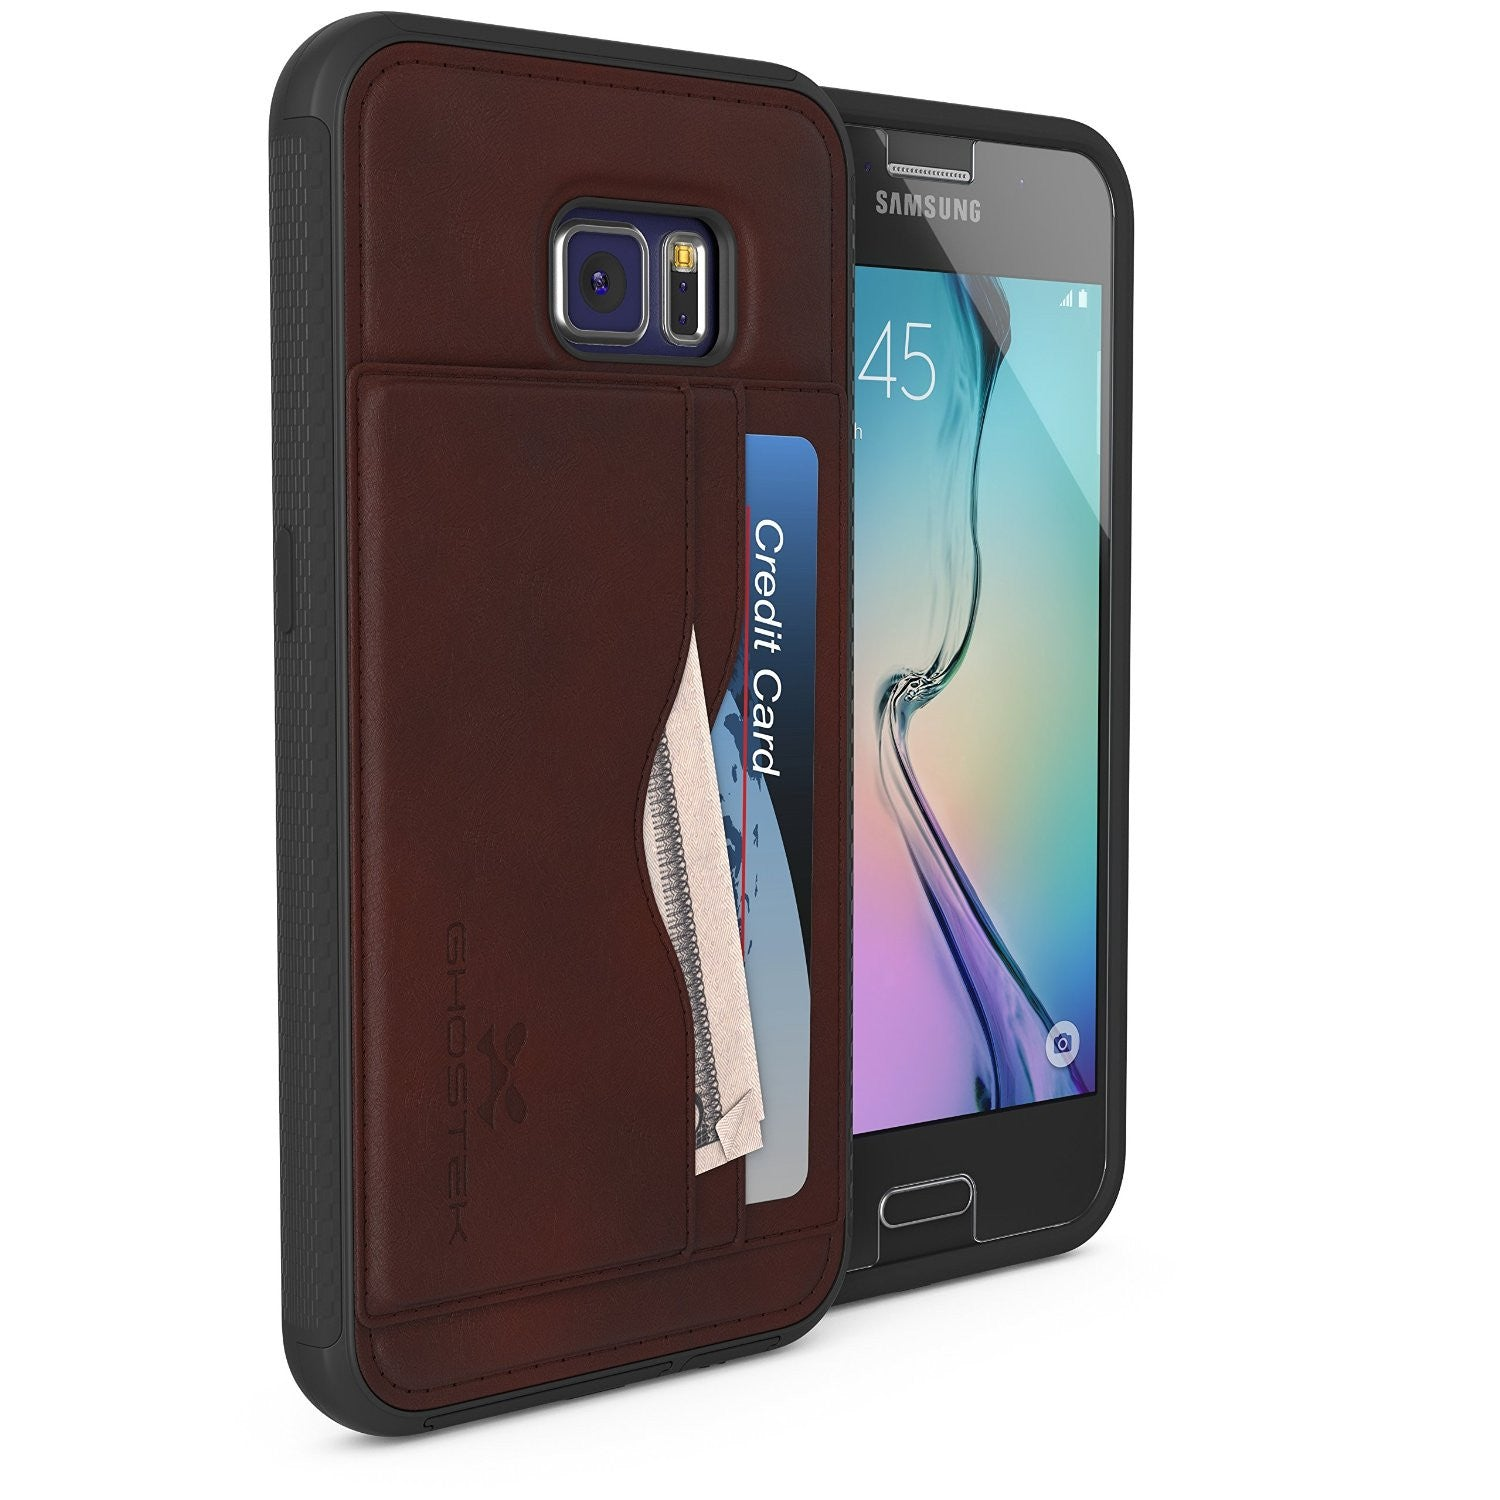 Galaxy S6 Wallet Case, Ghostek Stash Dark Brown Wallet Case w/ Tempered Glass | Lifetime Warranty